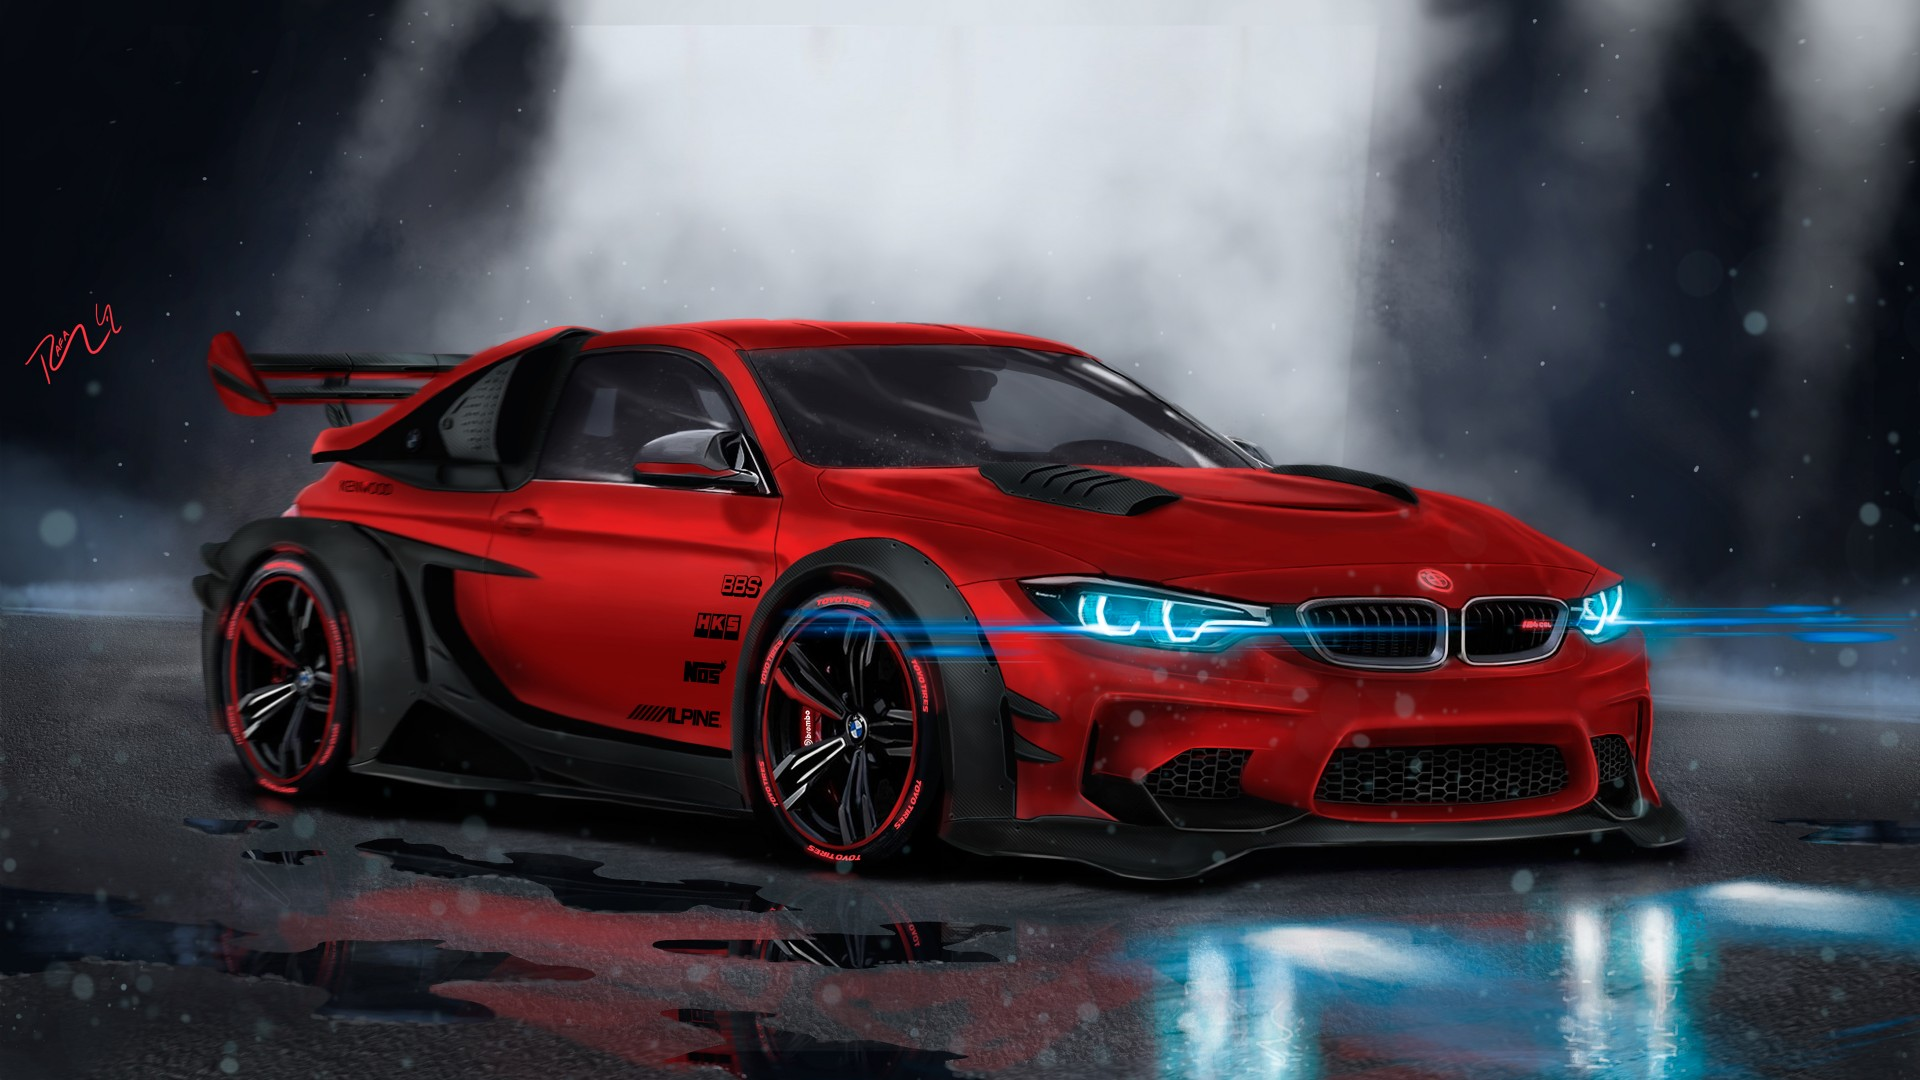 Bmw M Wallpaper Iphone X Bmw M4 Custom Cgi 4k Wallpaper Hd Car Wallpapers Id 9028